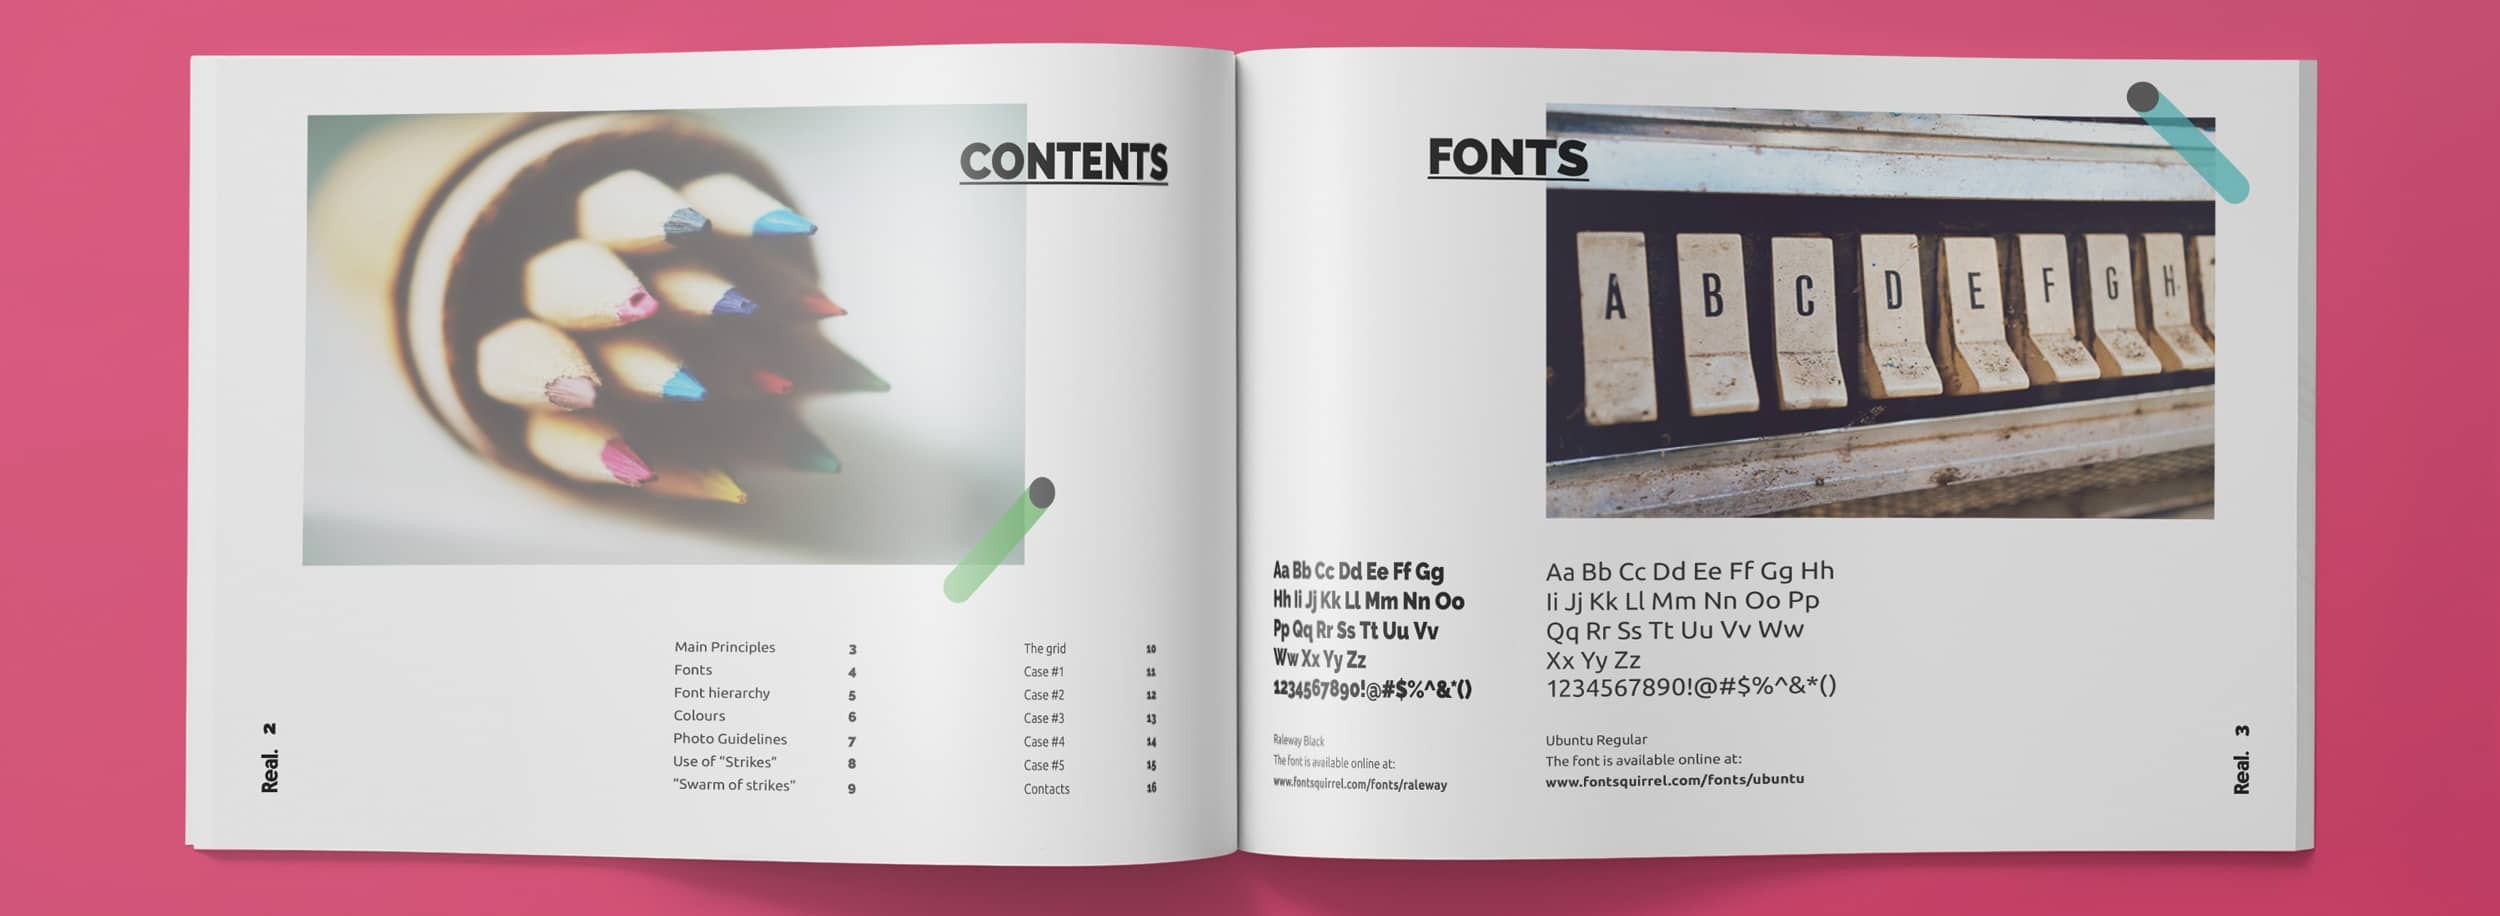 Brand Guide for Real: Contents and Fonts spread